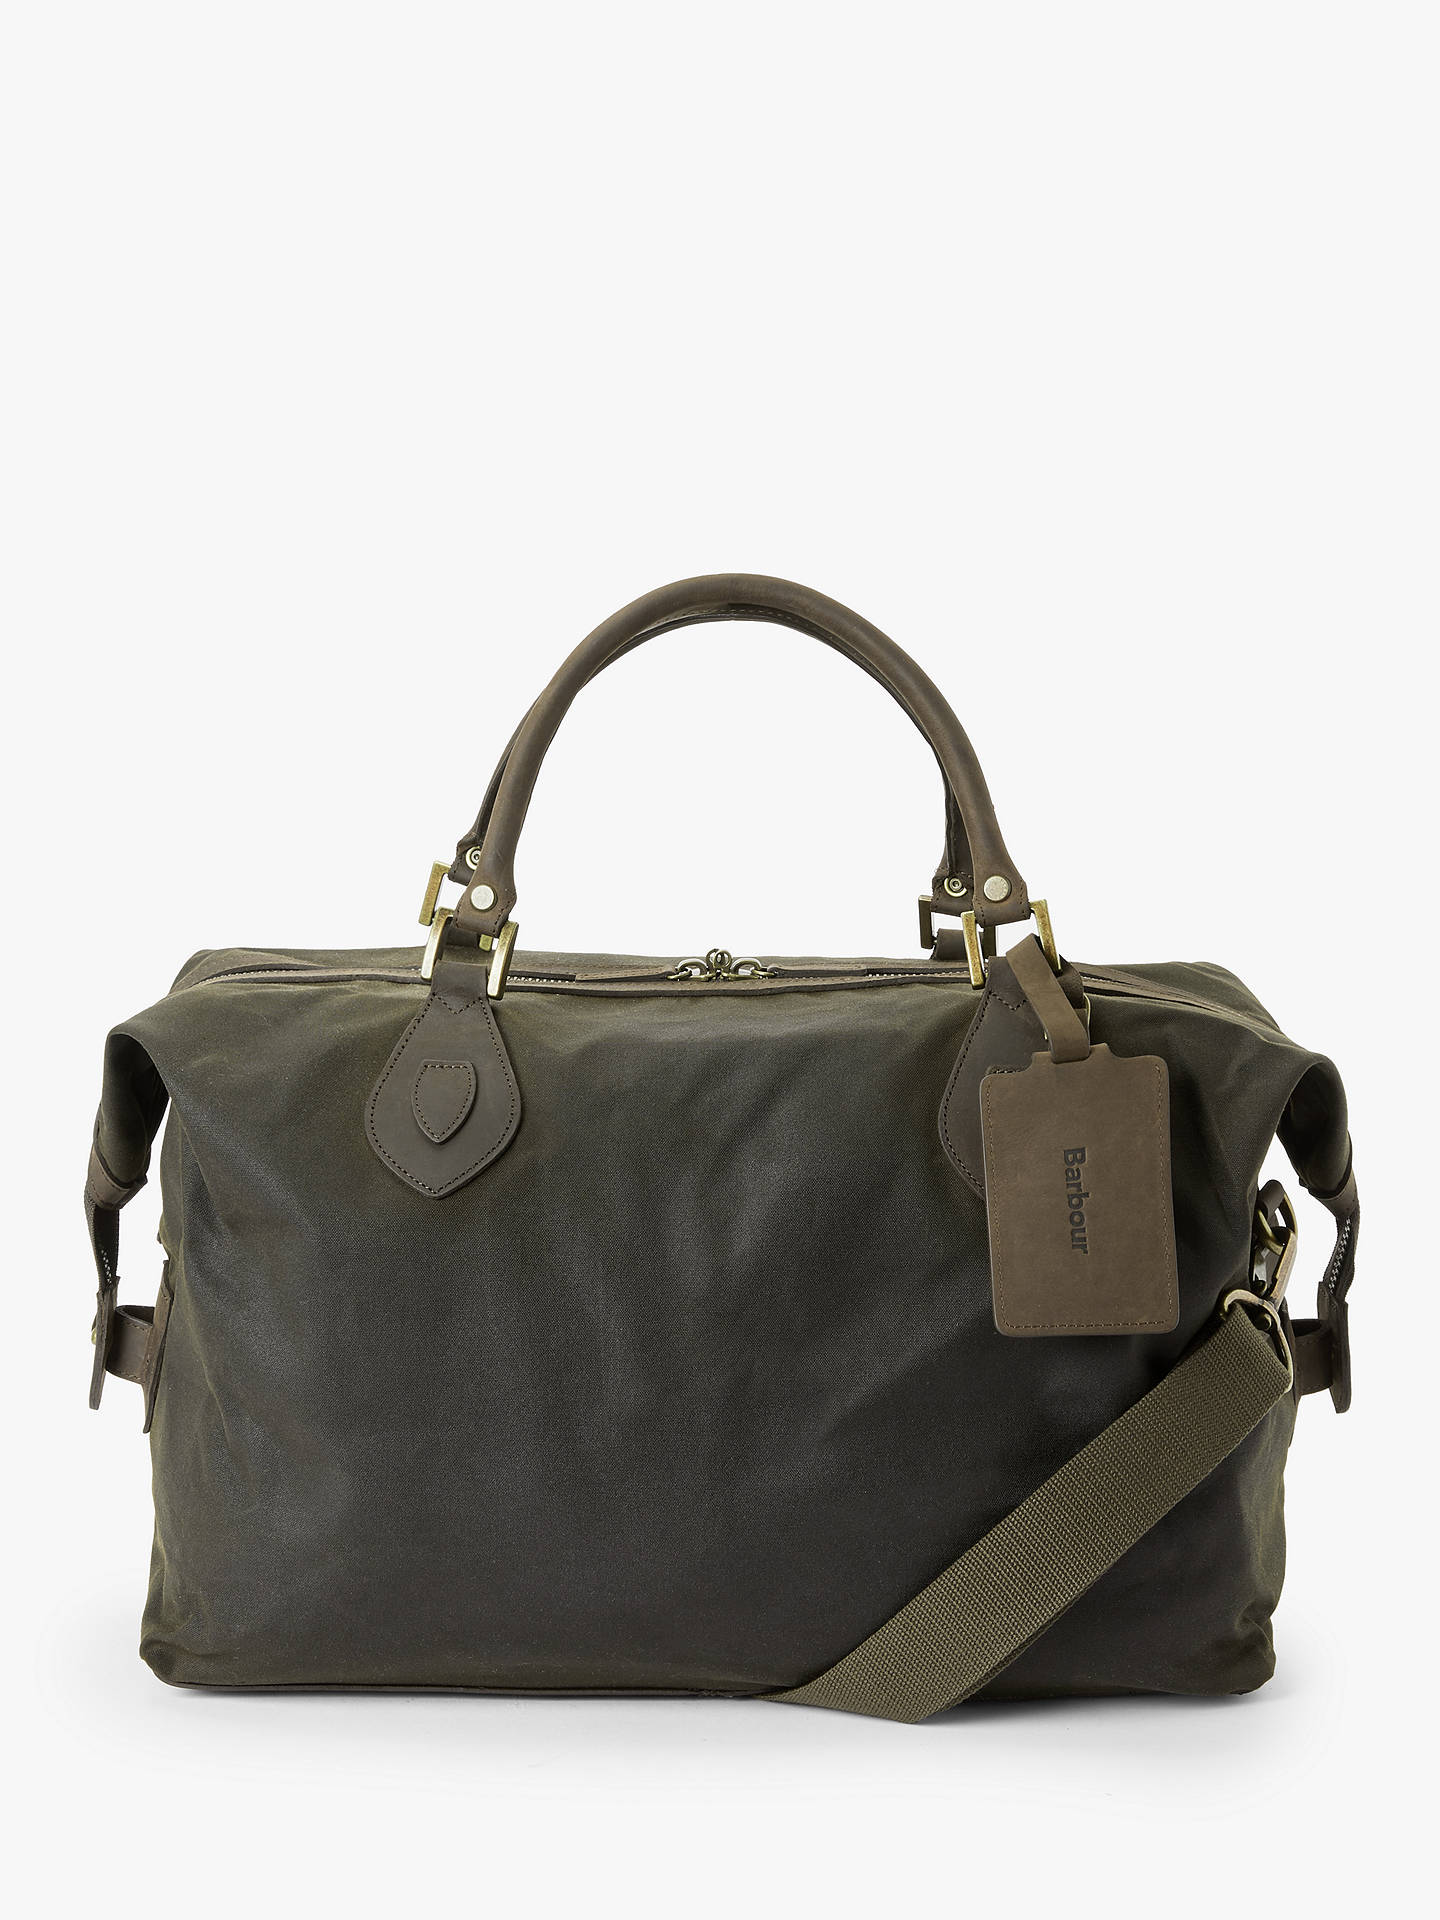 6466a105c4d Barbour Wax Cotton Travel Explorer Holdall at John Lewis & Partners